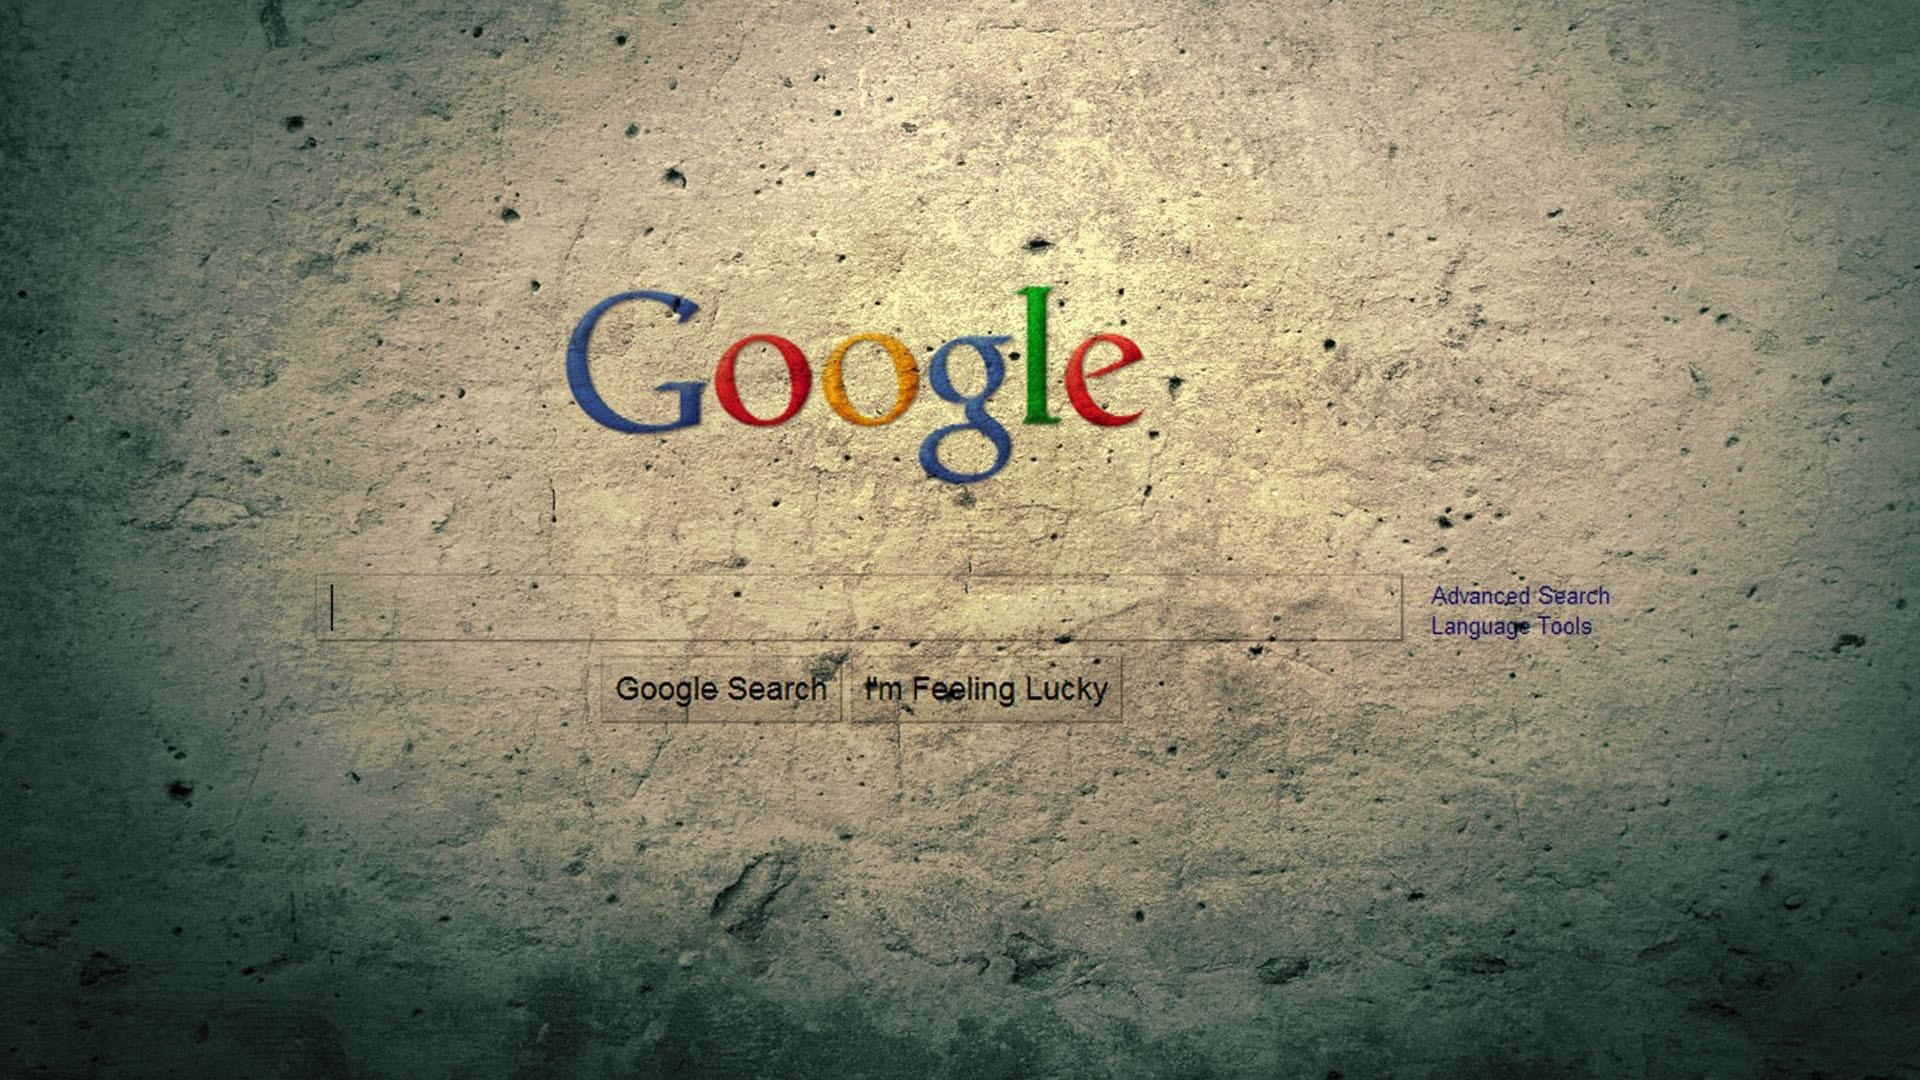 Google-Grunge-Abstract-HD-1080p-Wallpapers